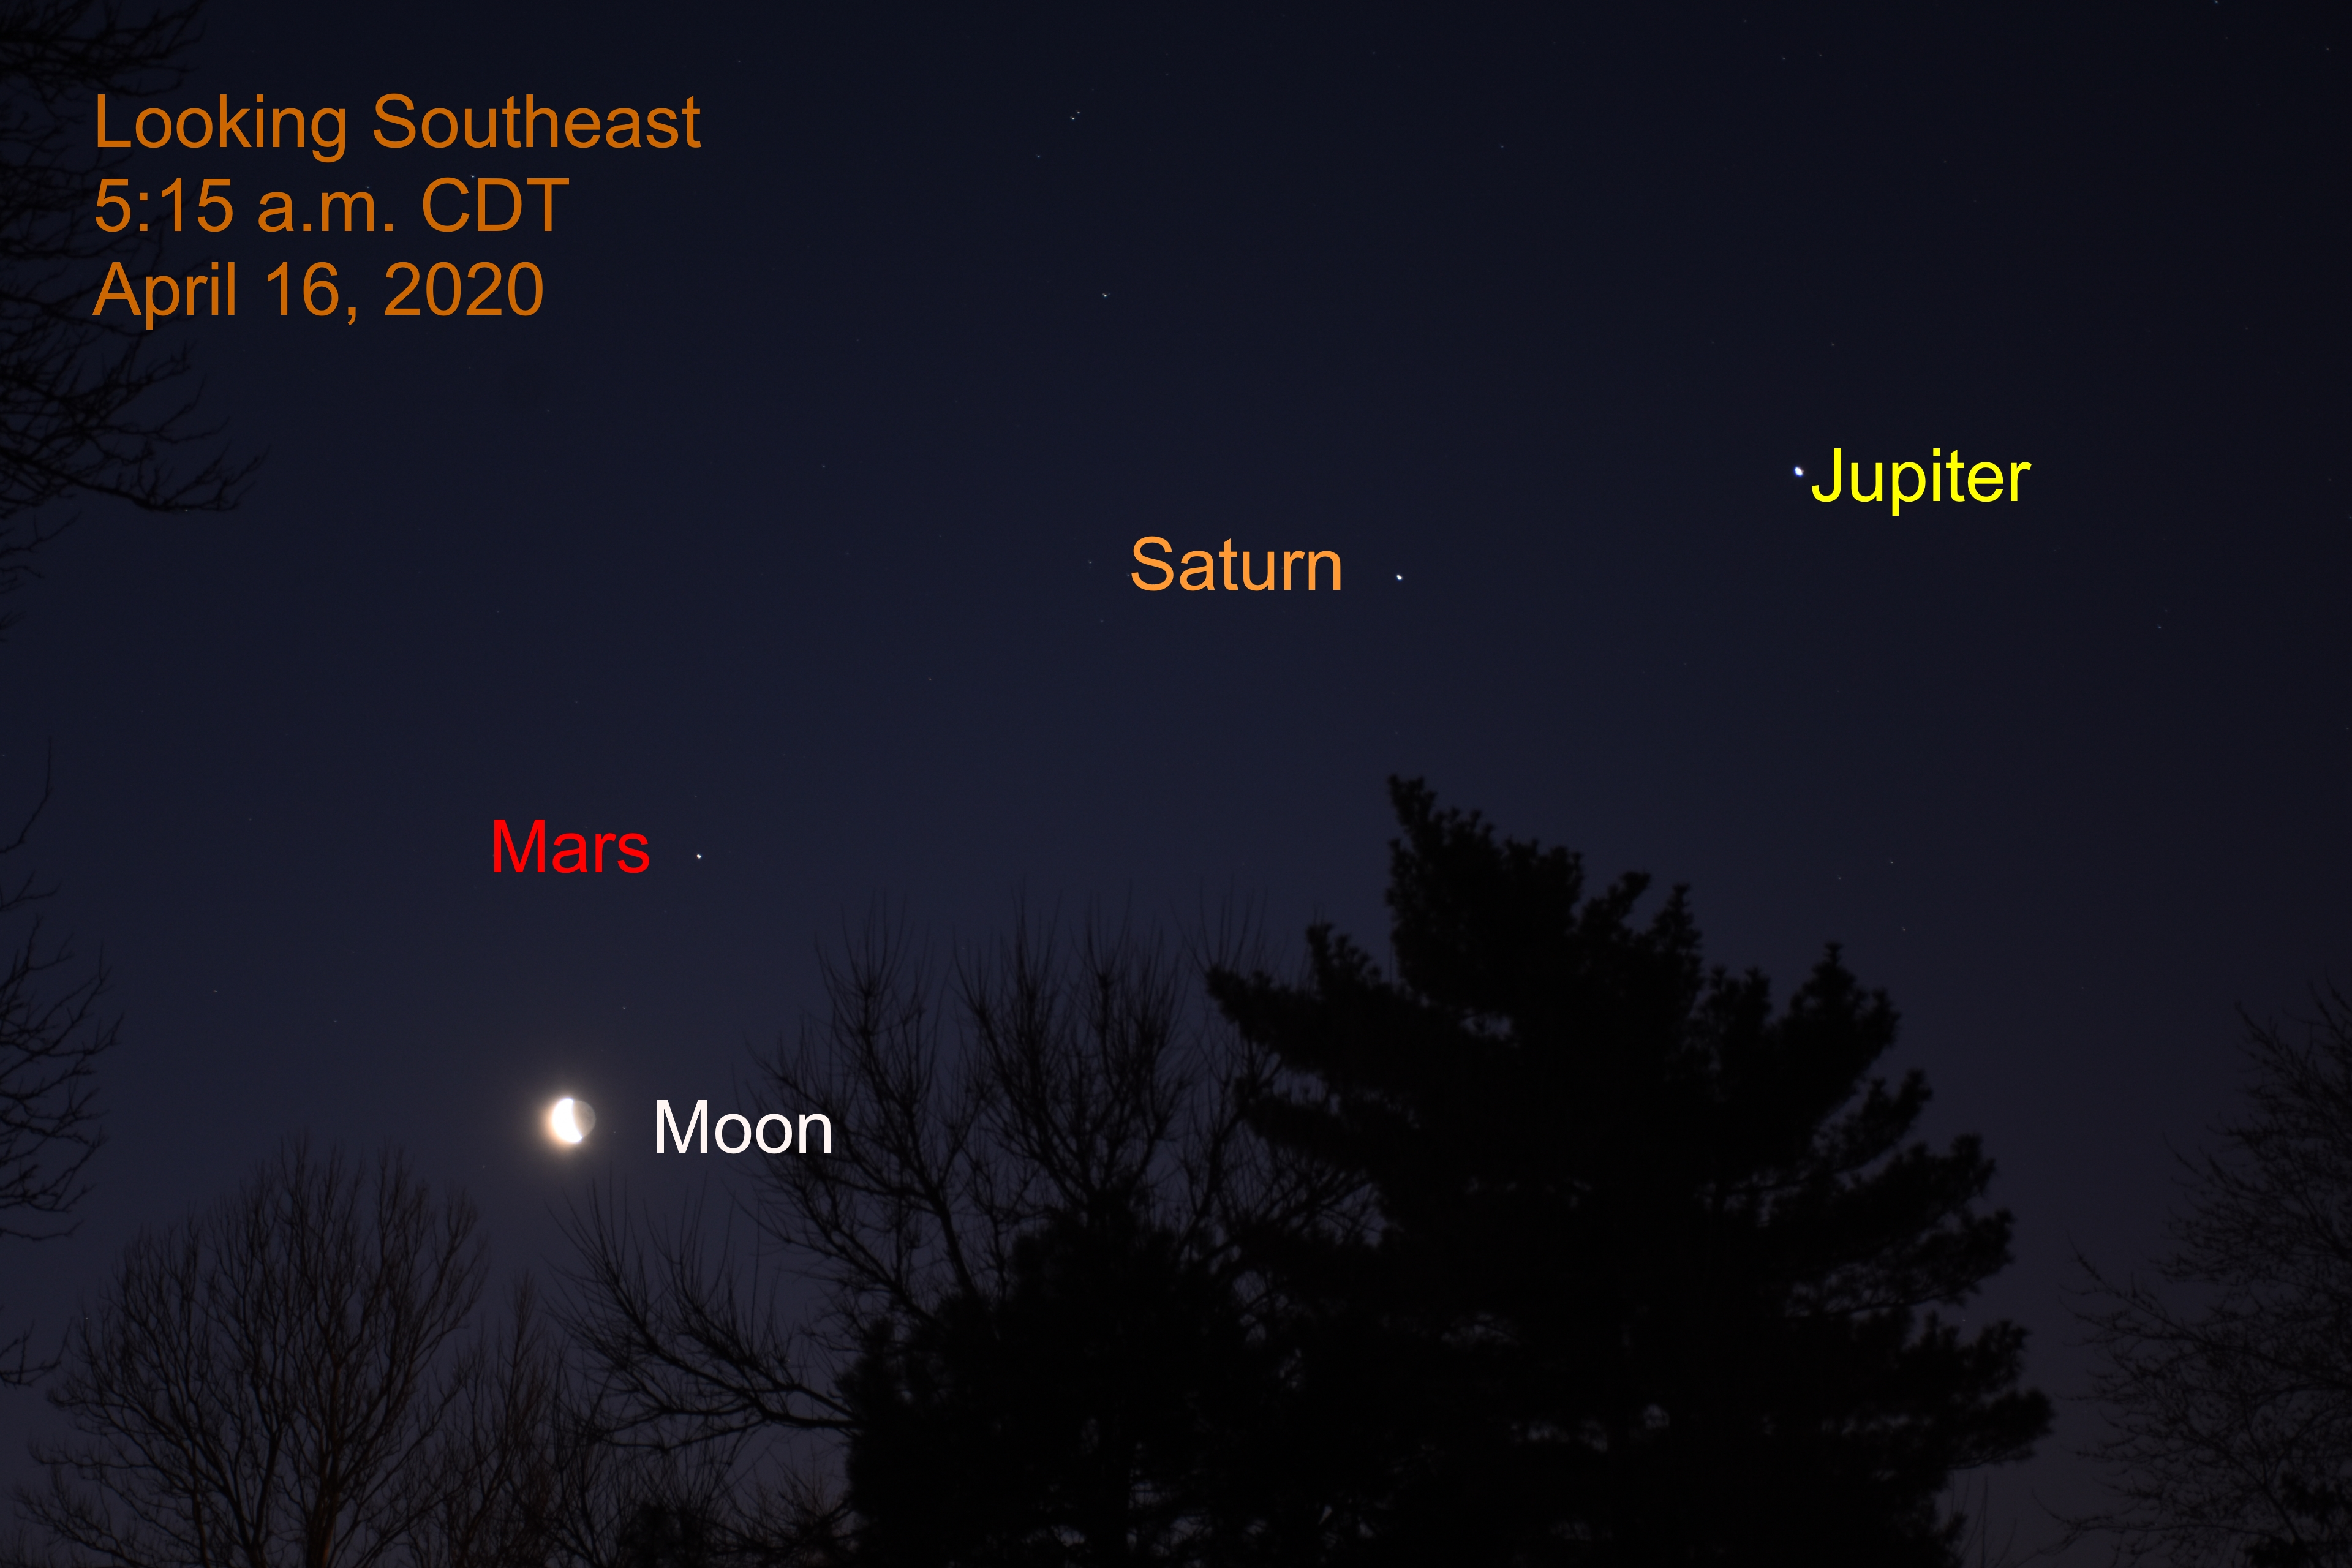 The moon is near Mars as it passes the morning planets, April 16, 2020.